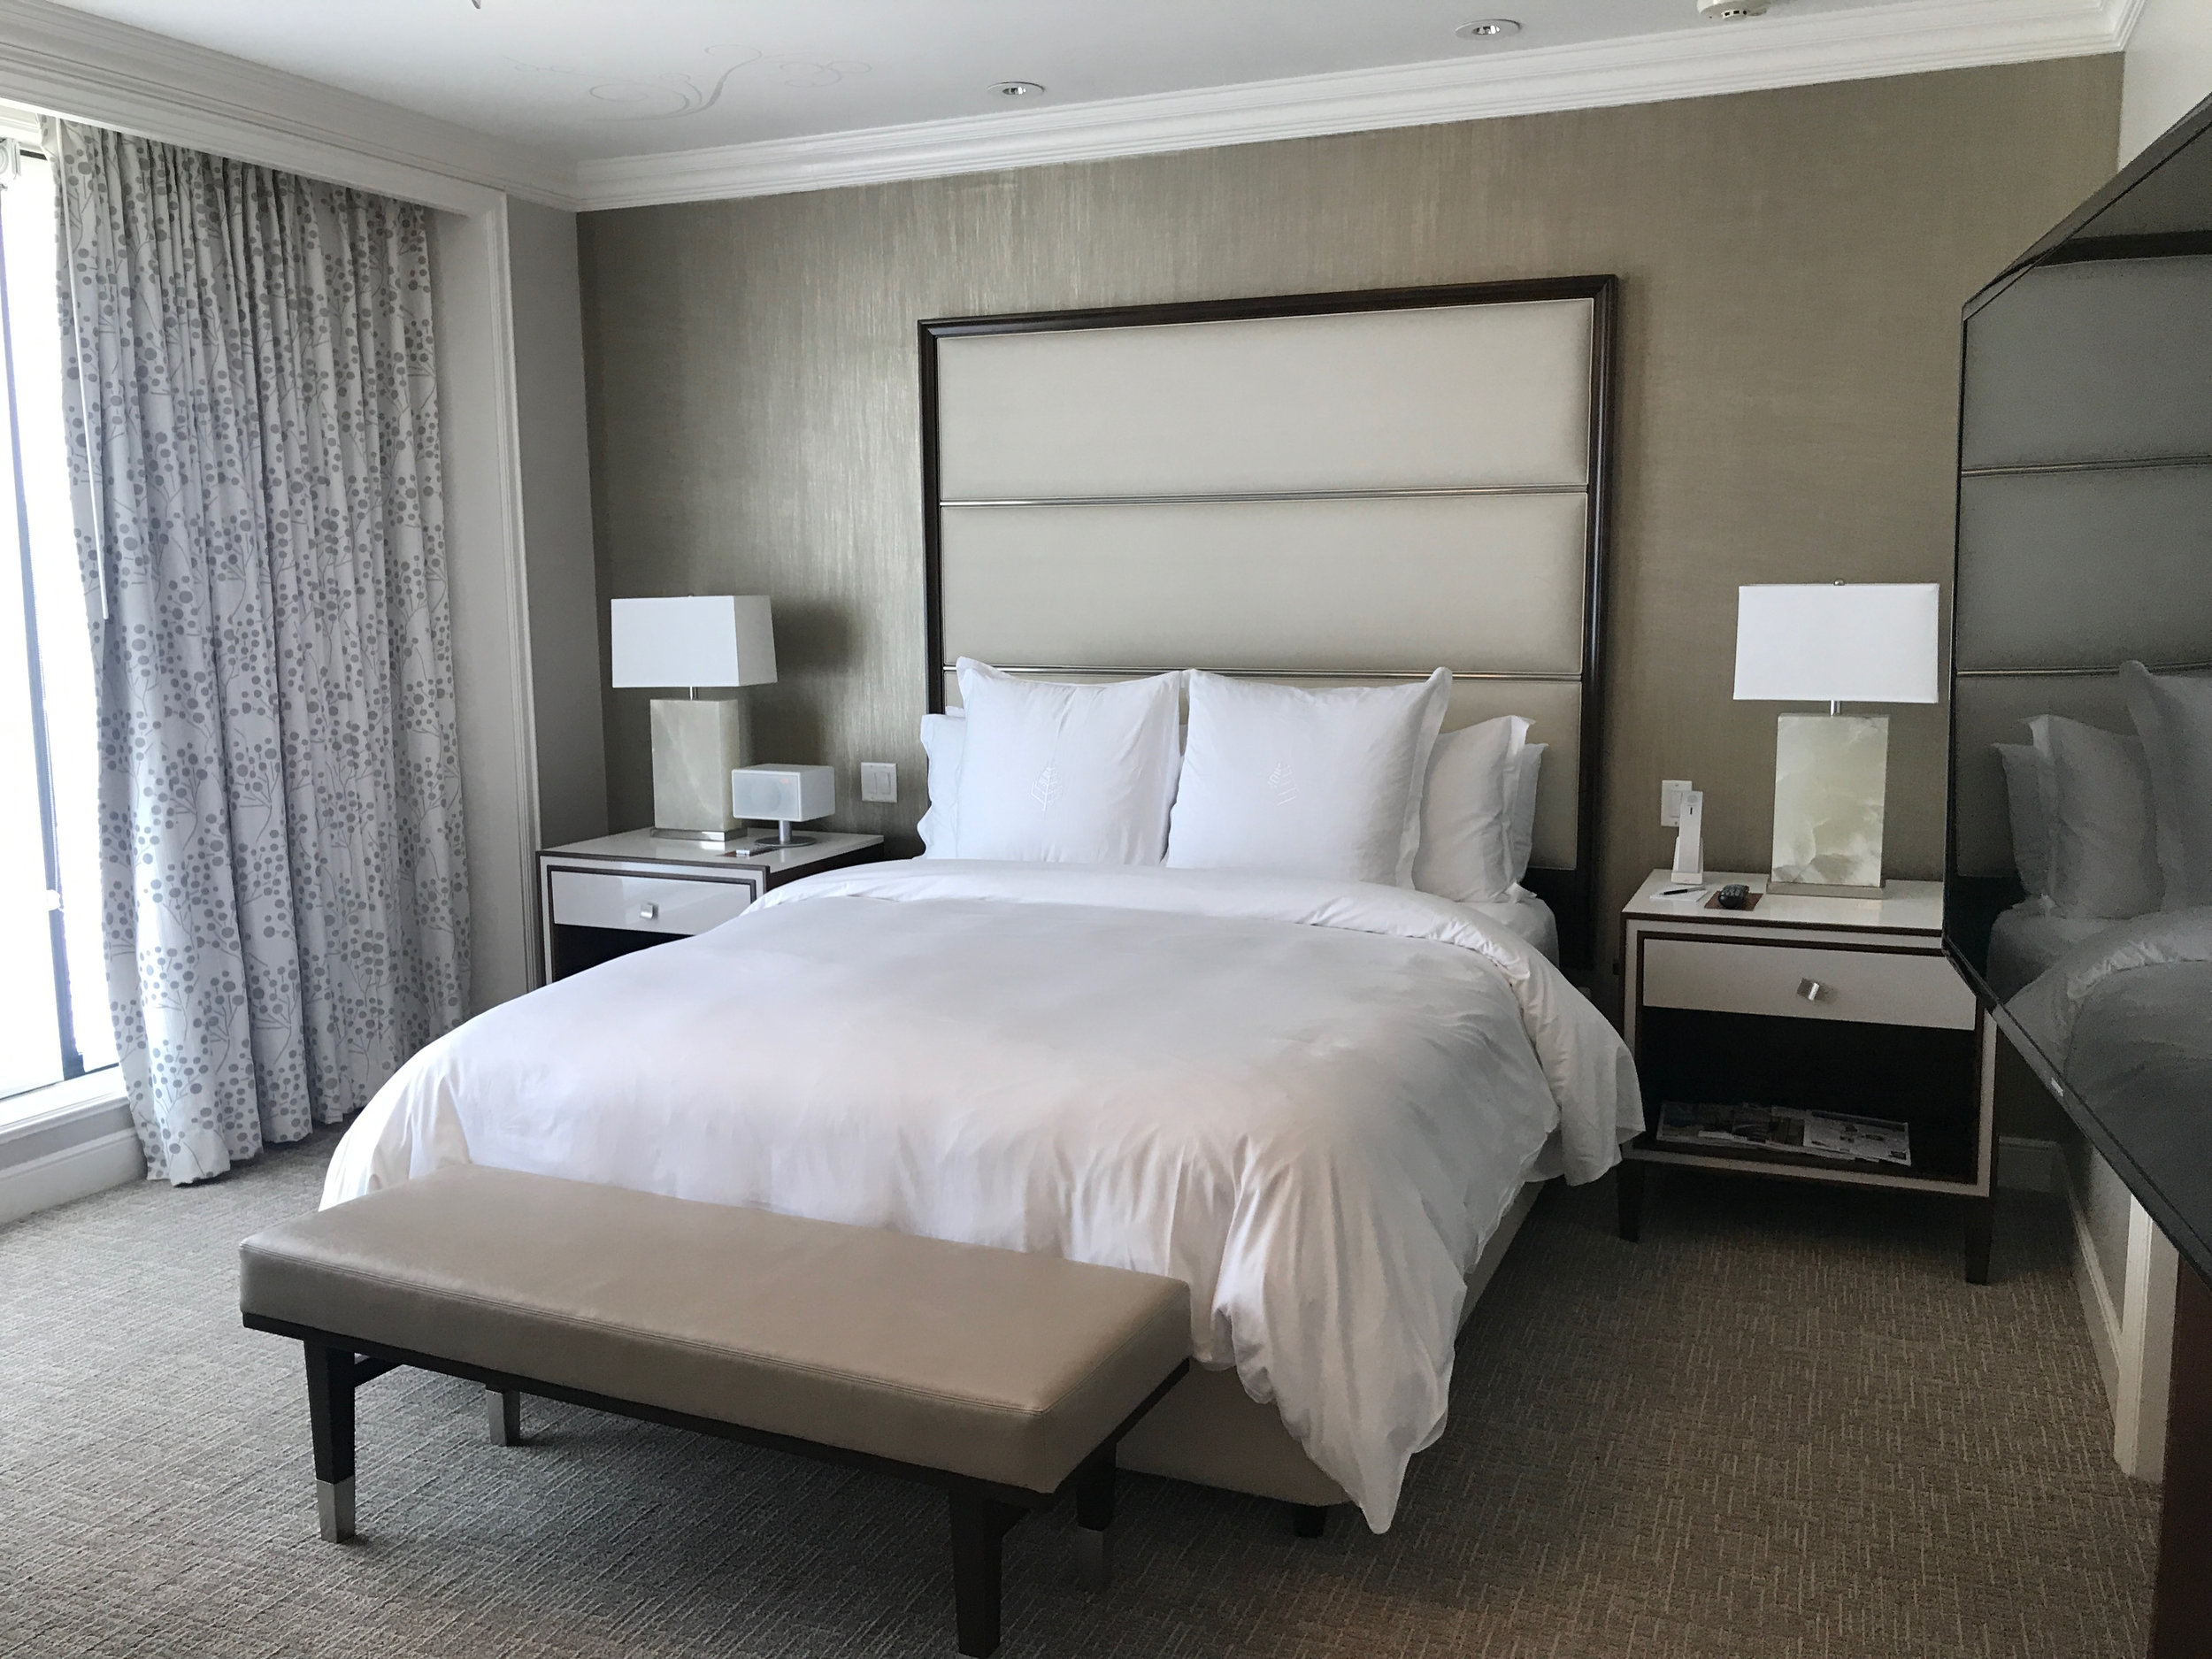 Enjoy the comfort of the Four Seasons bed